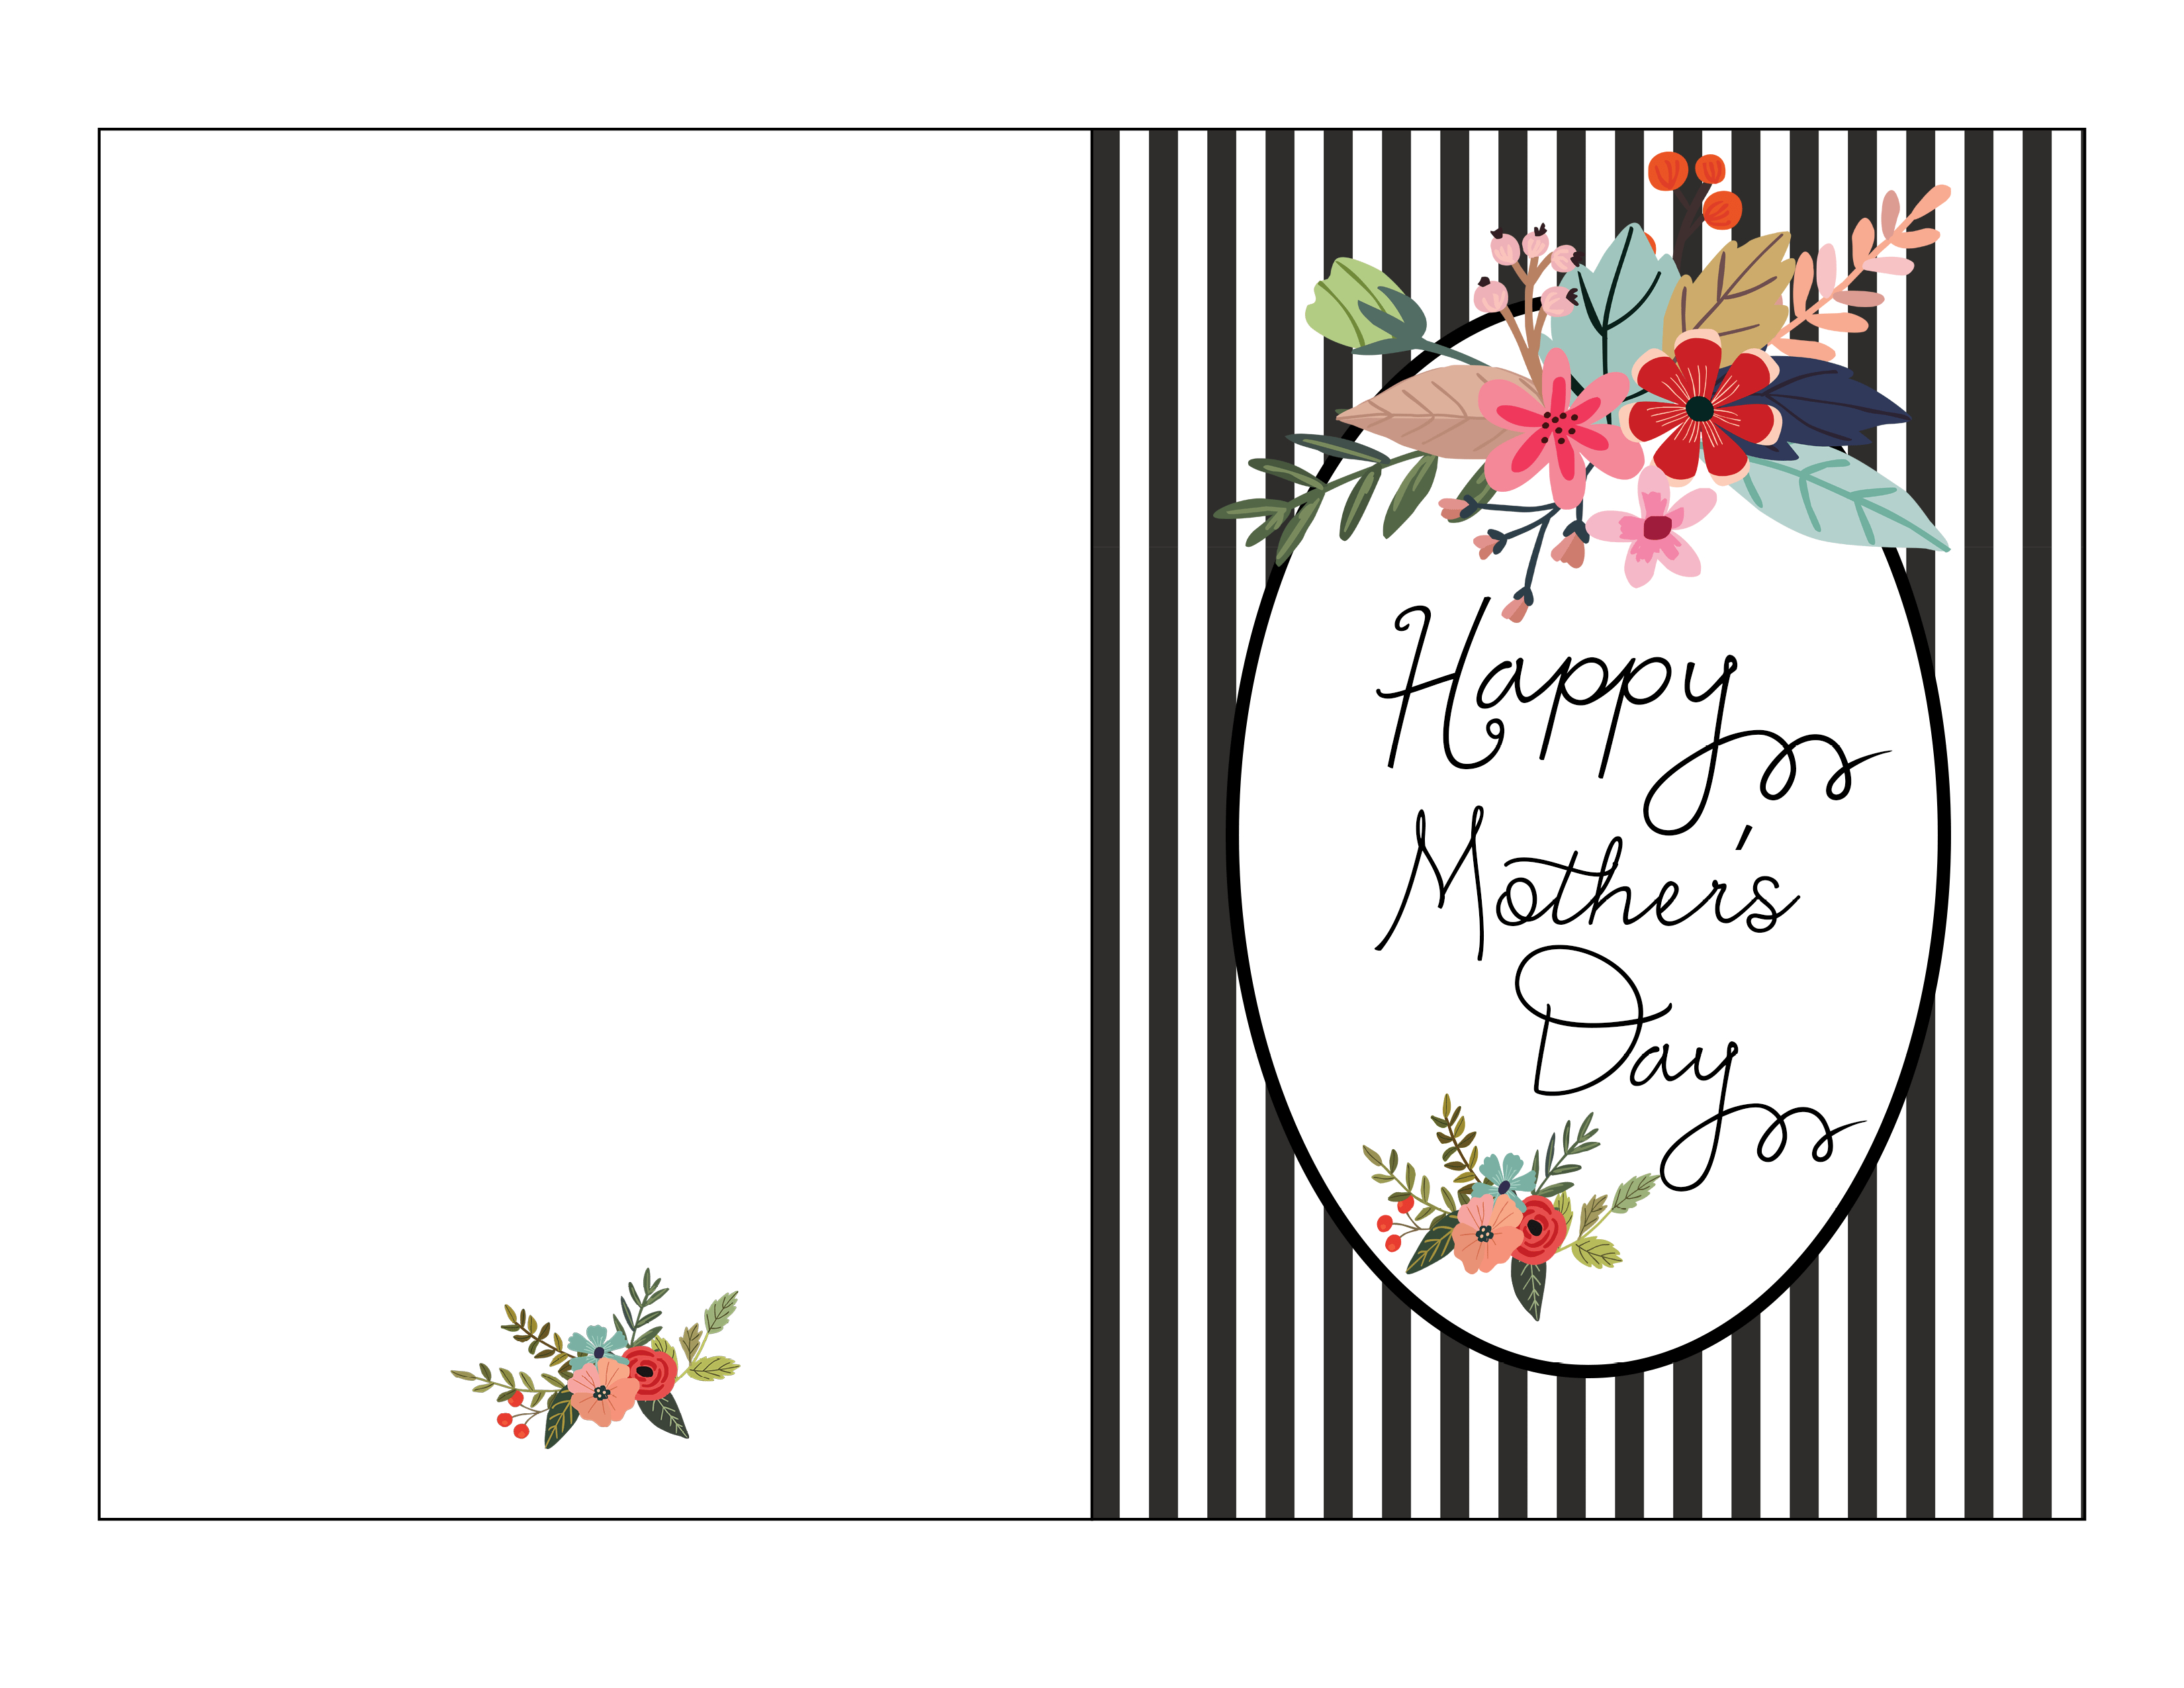 Free Mother's Day Card Printable - Fab Fatale - Free Printable Mothers Day Cards